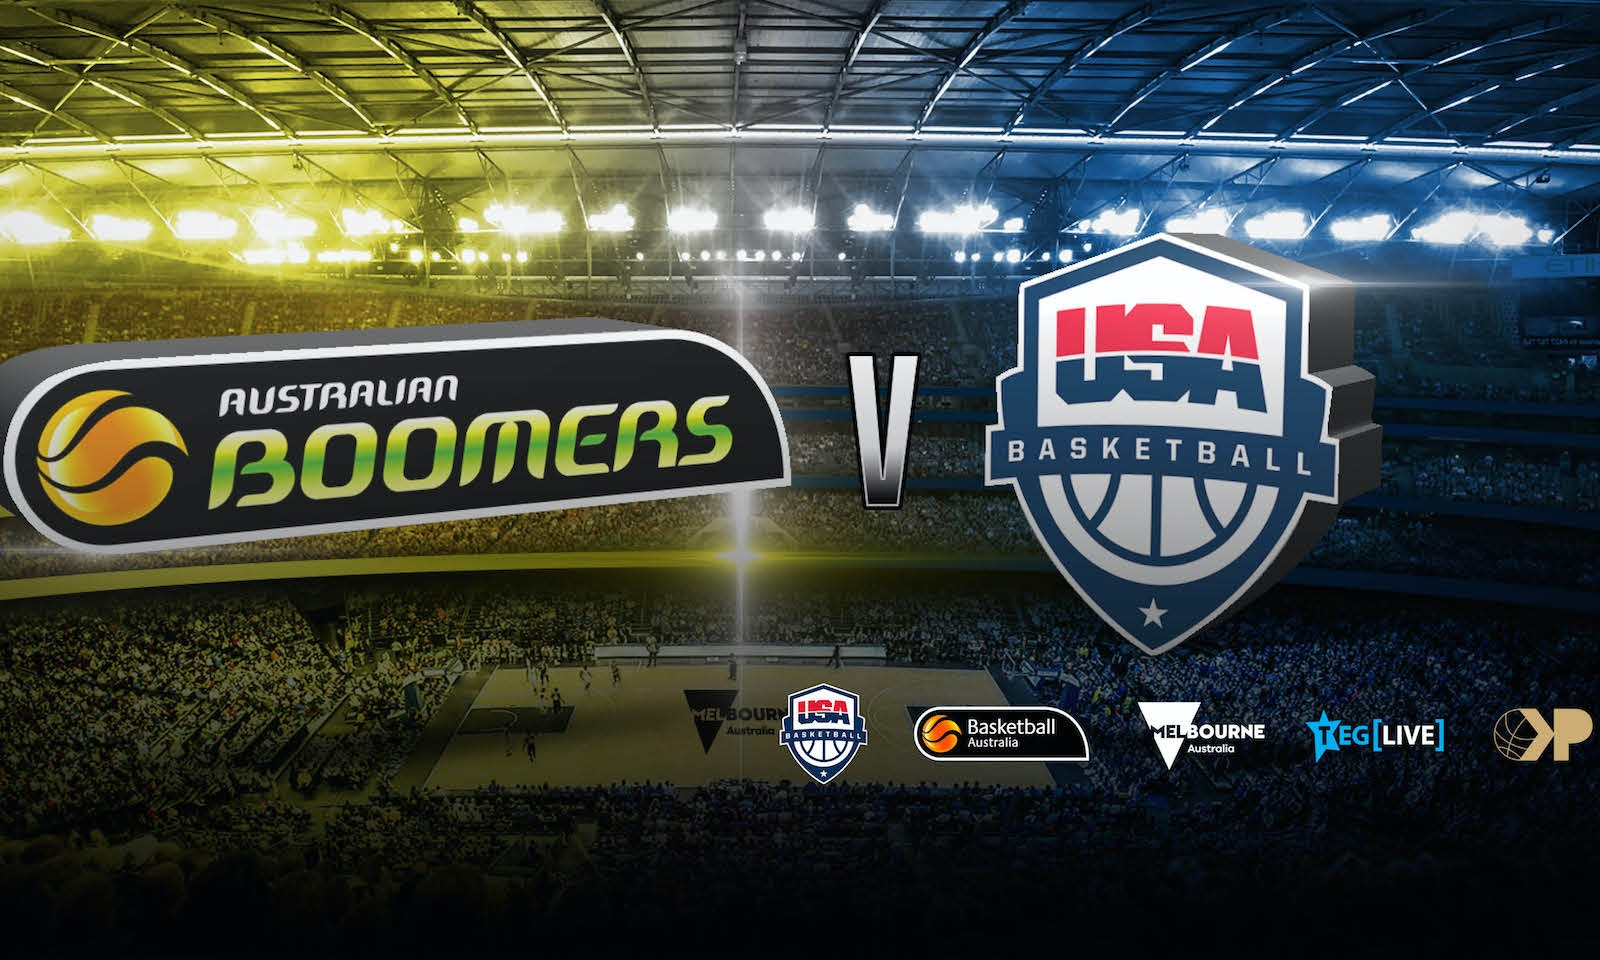 boomers vs usa - photo #45